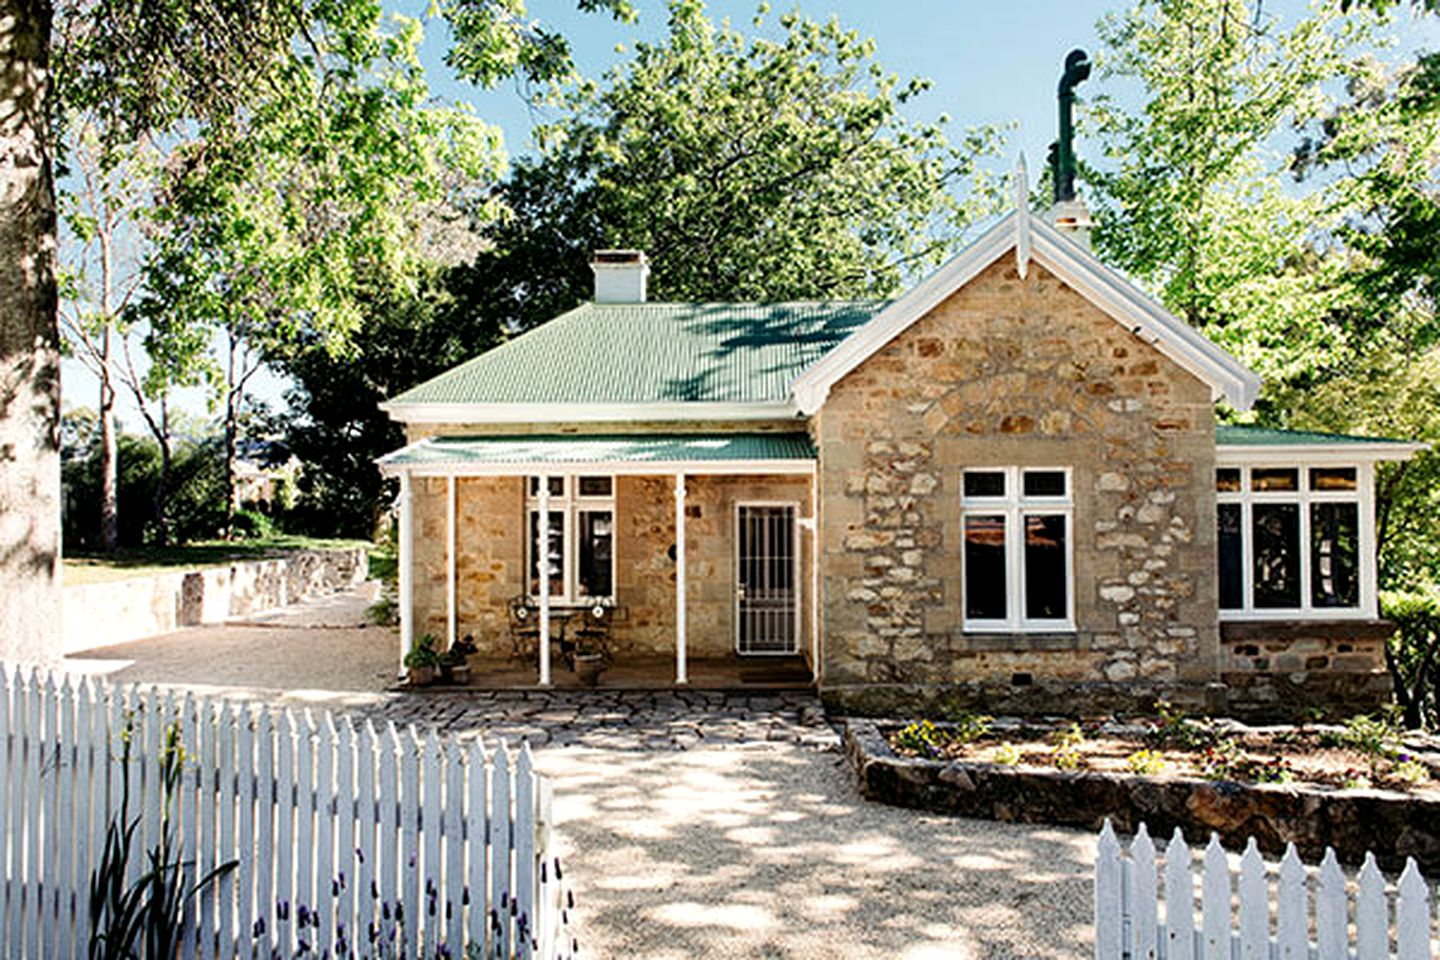 Cottages (Crafers, South Australia, Australia)